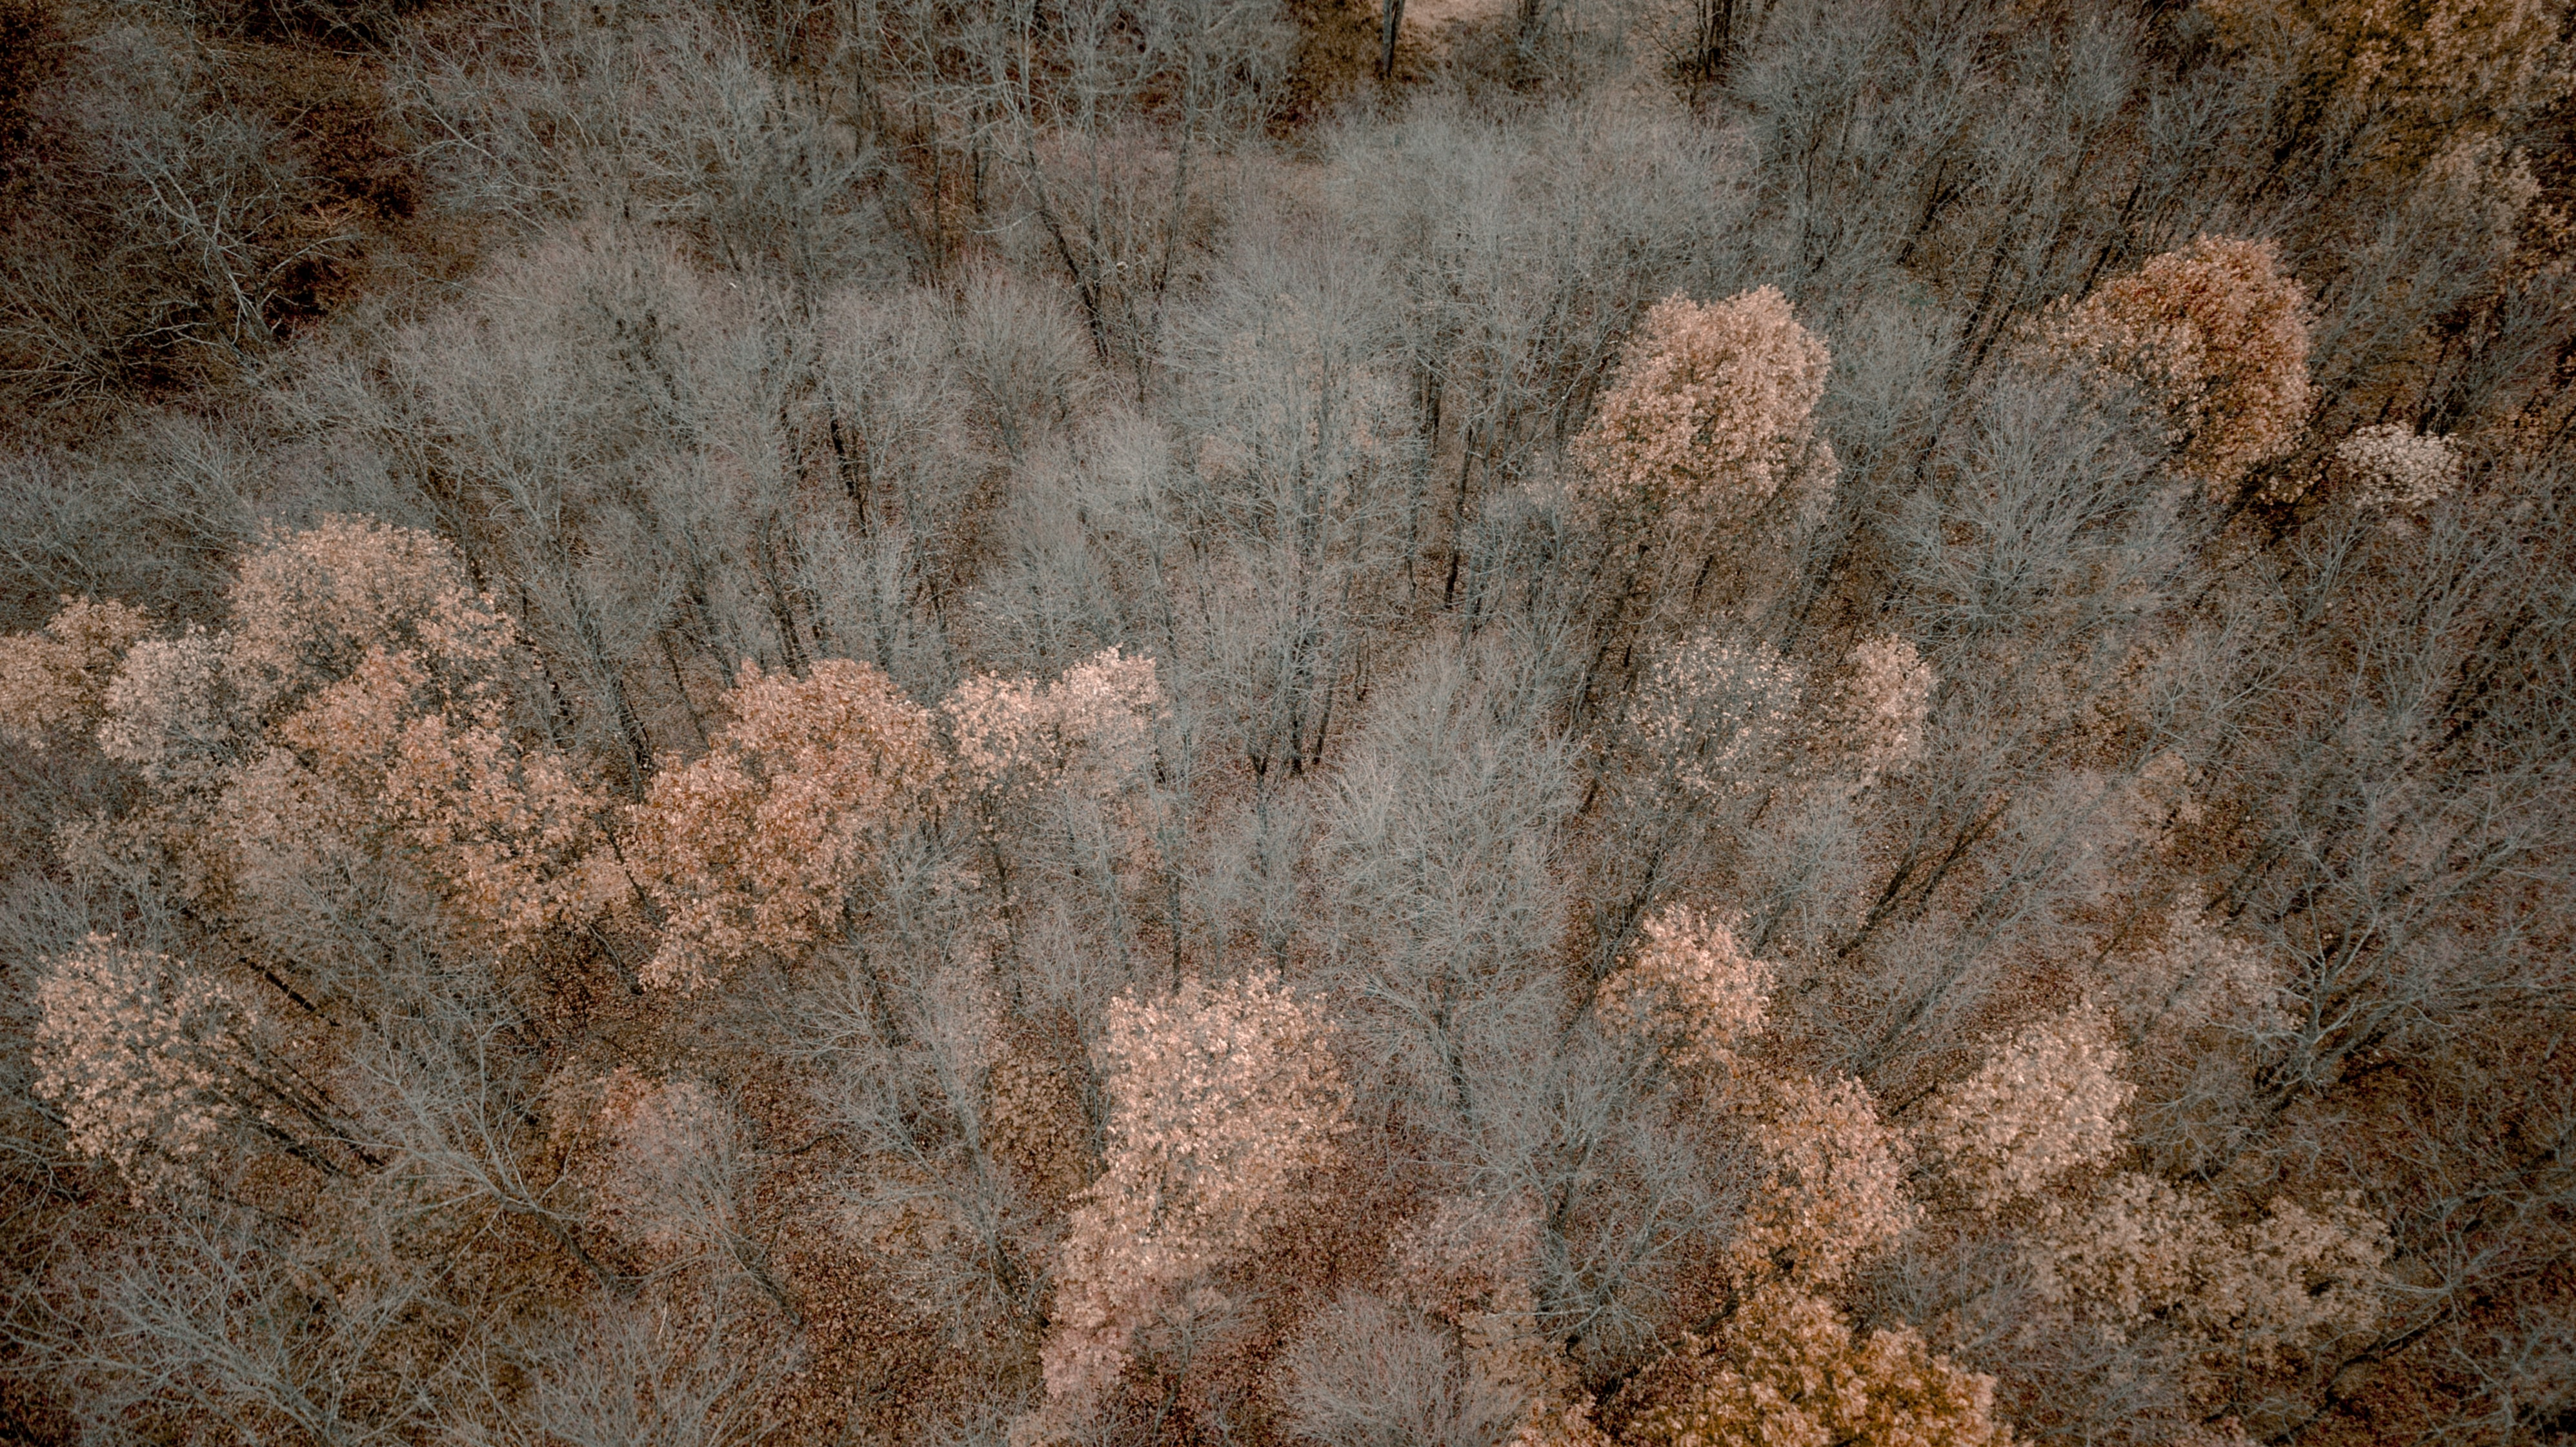 bird's eye view photo of brown tree